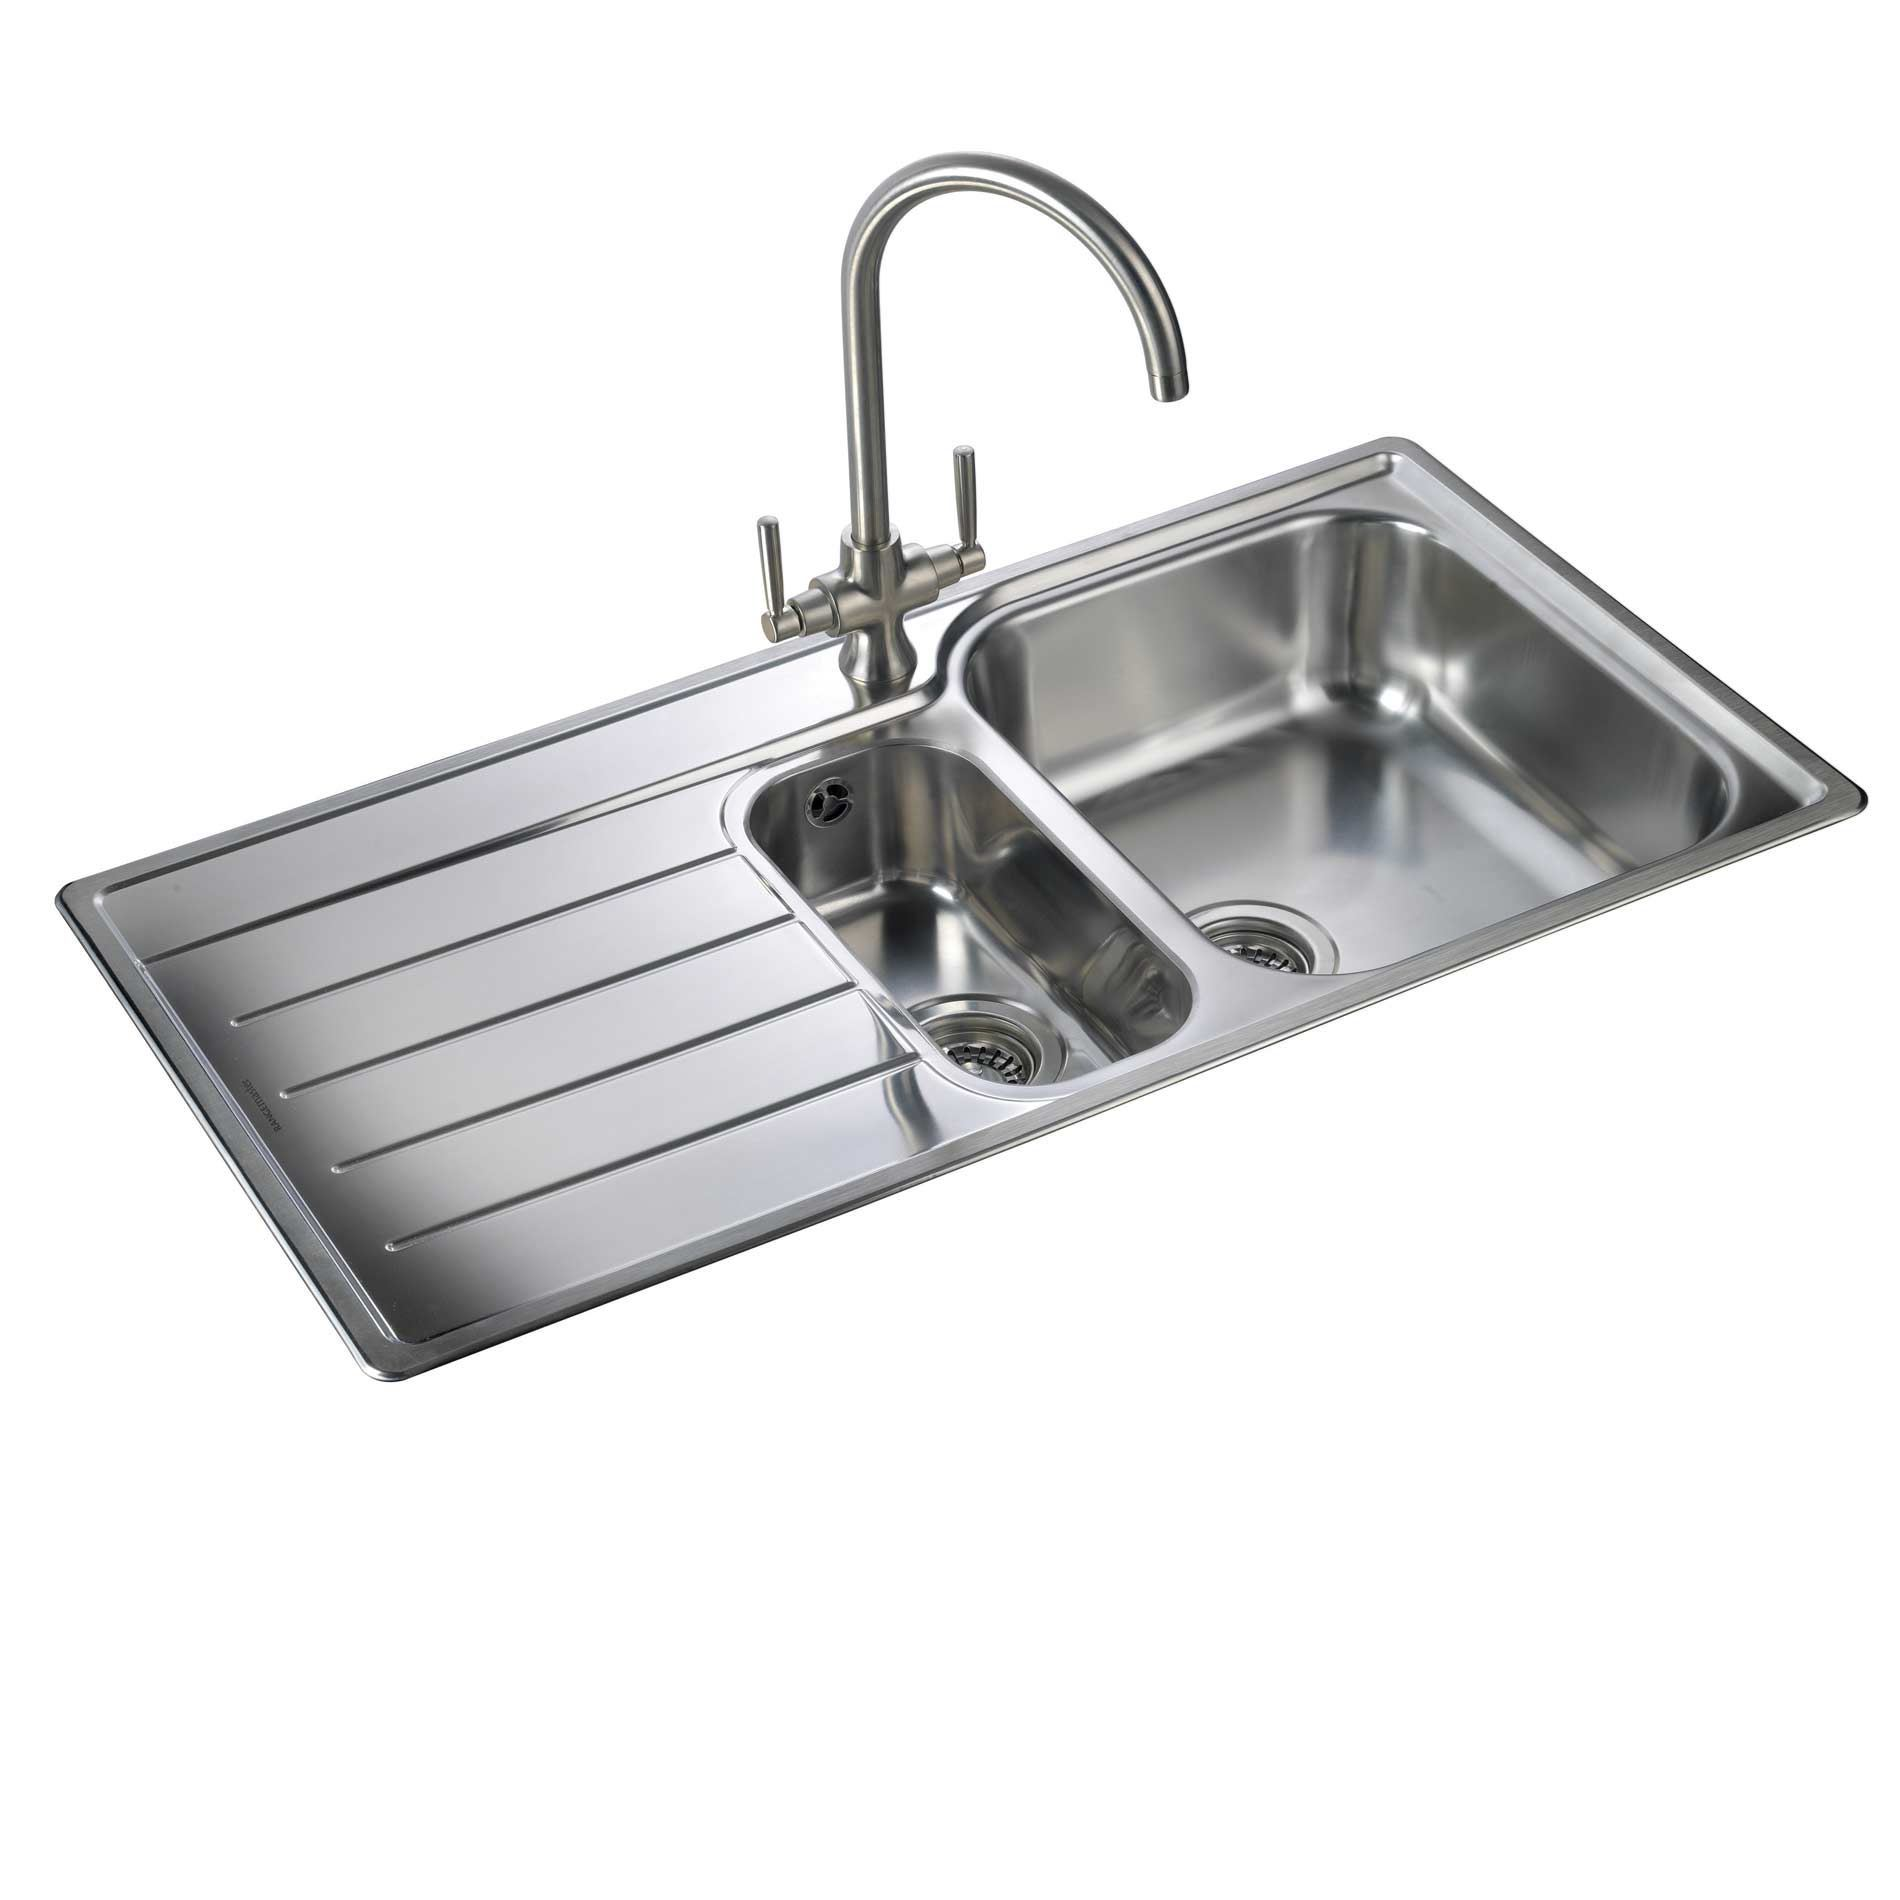 Kitchen Design Kitchen Sinks Amp Taps Rangemaster Oakland Ol9852